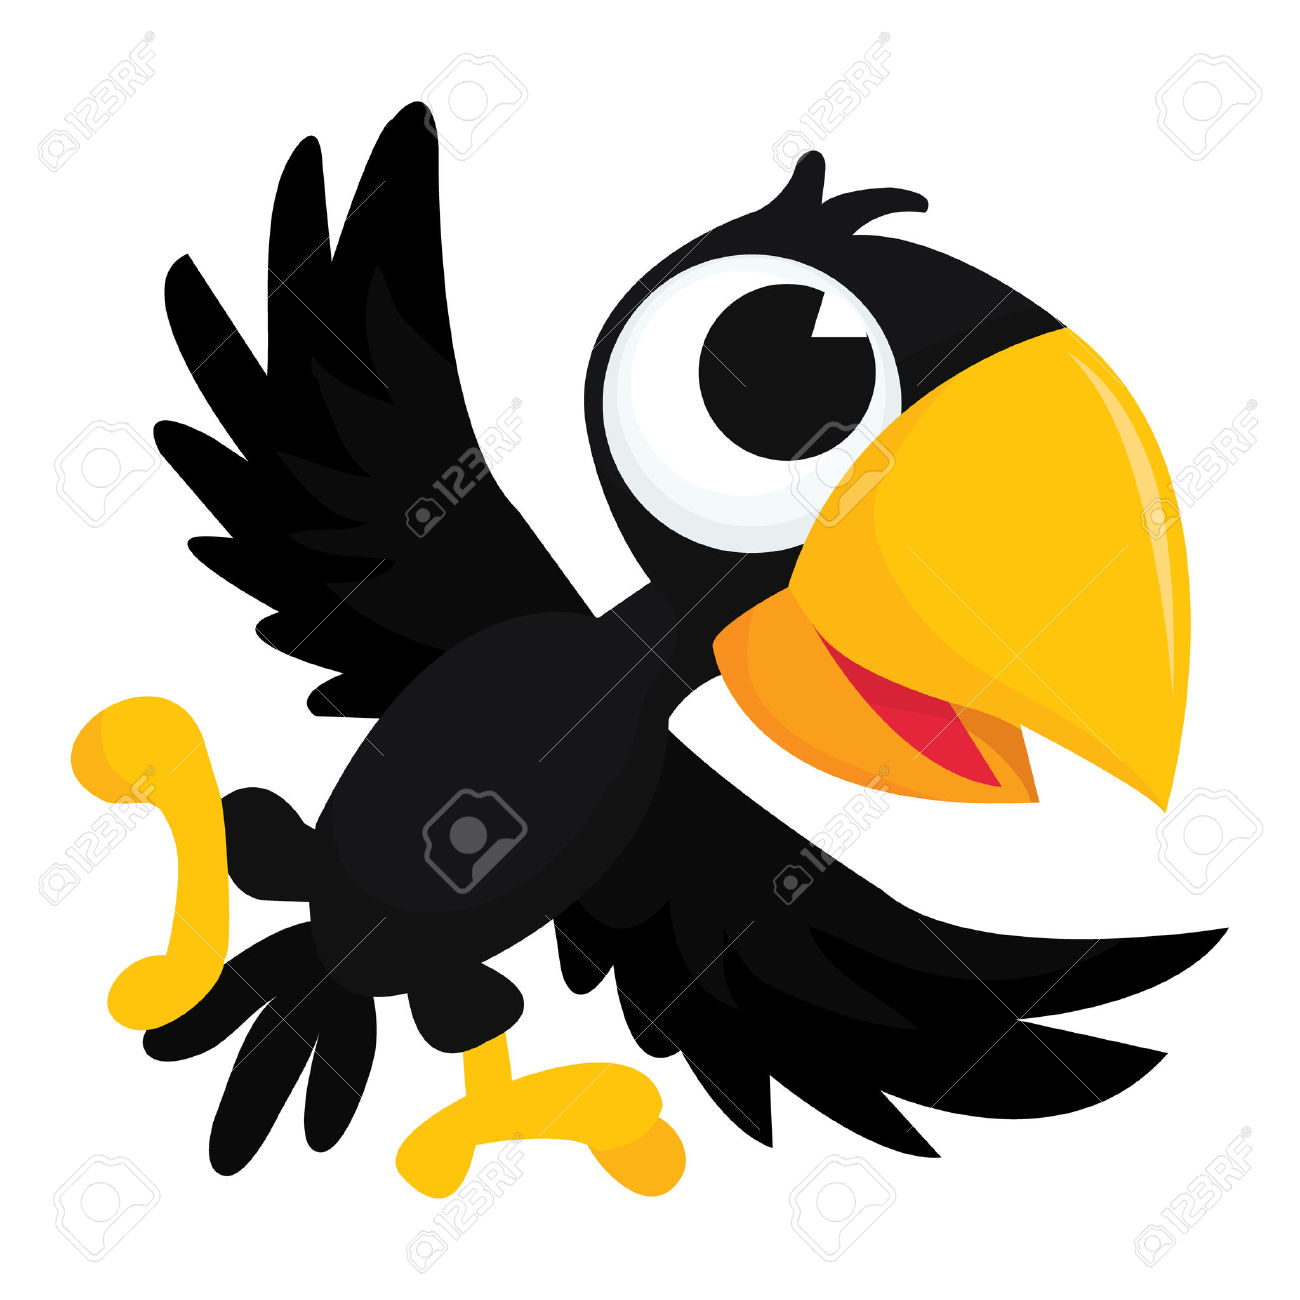 6,027 Crow Stock Vector Illustration And Royalty Free Crow Clipart.